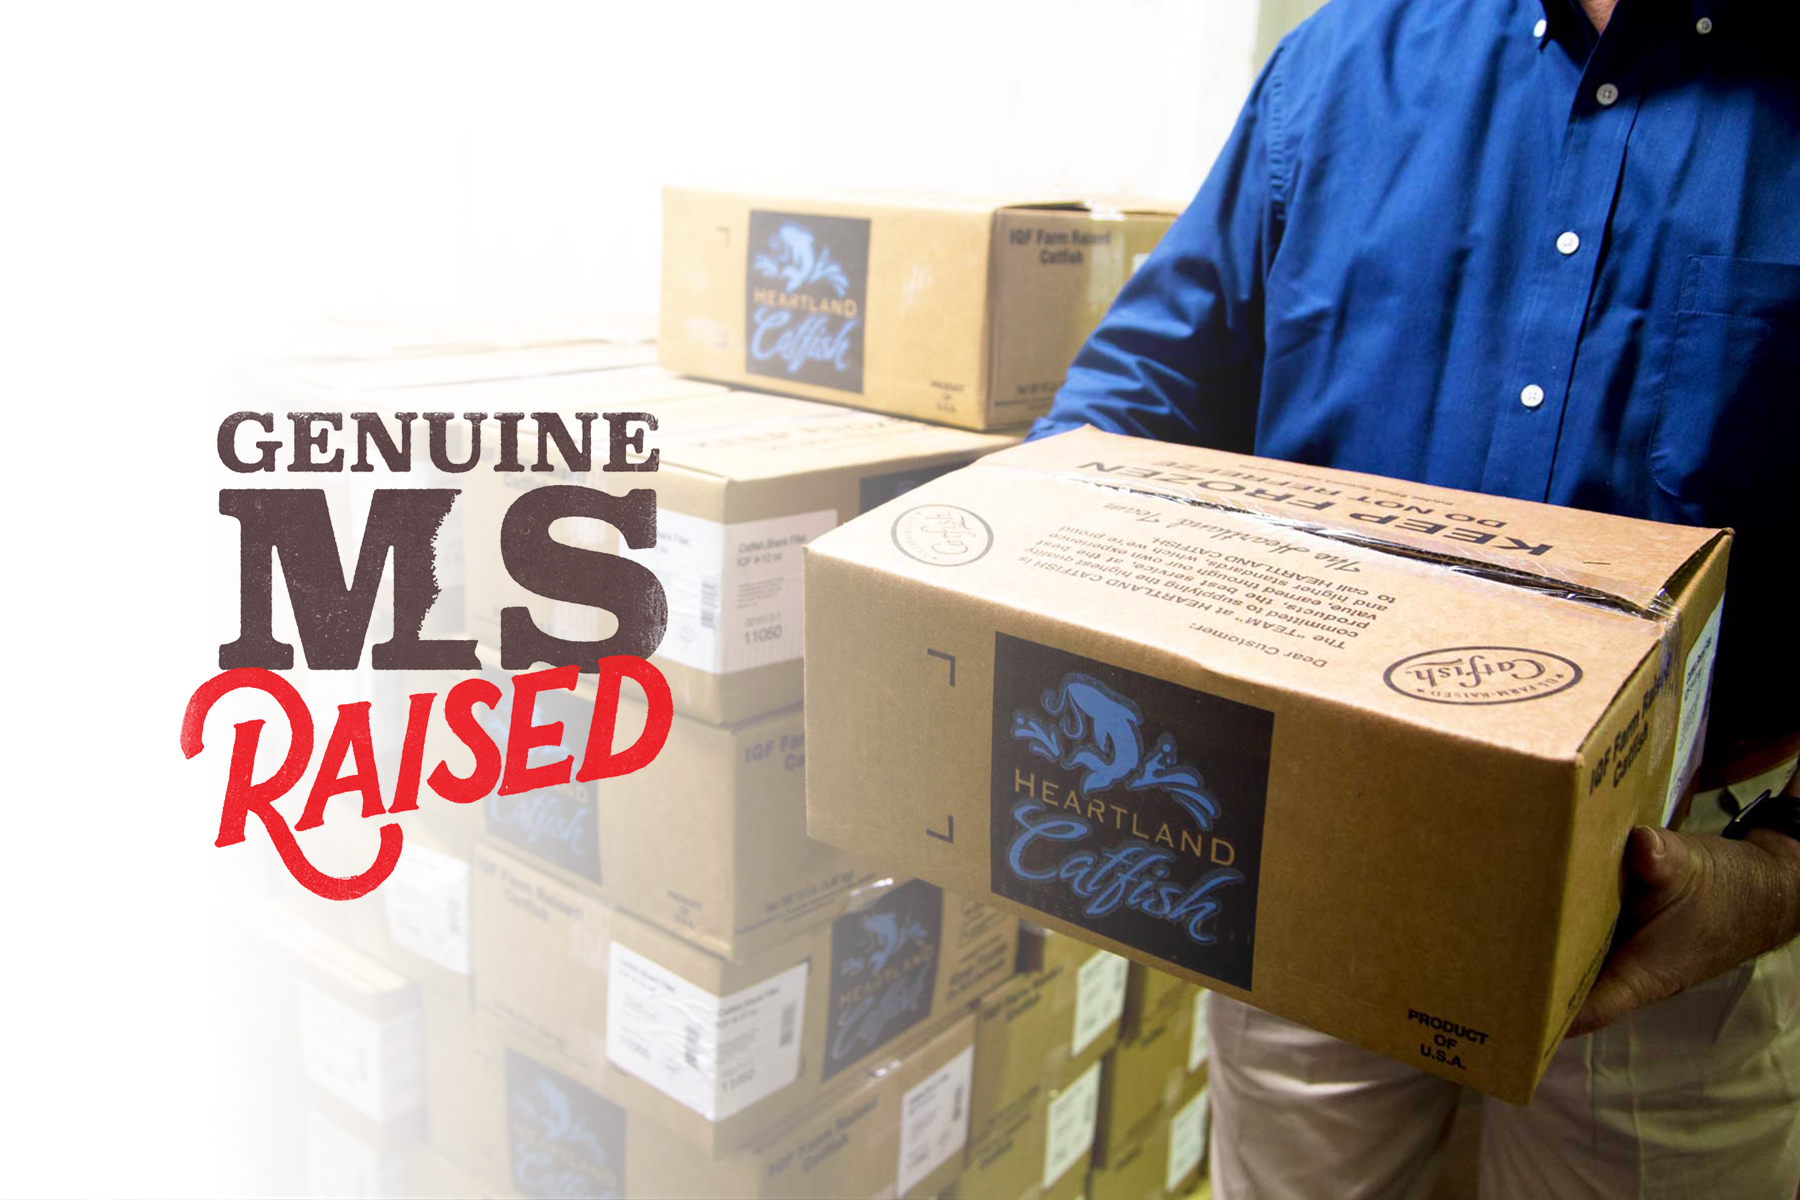 Heartland Catfish Company Is a Proud Member of Genuine MS